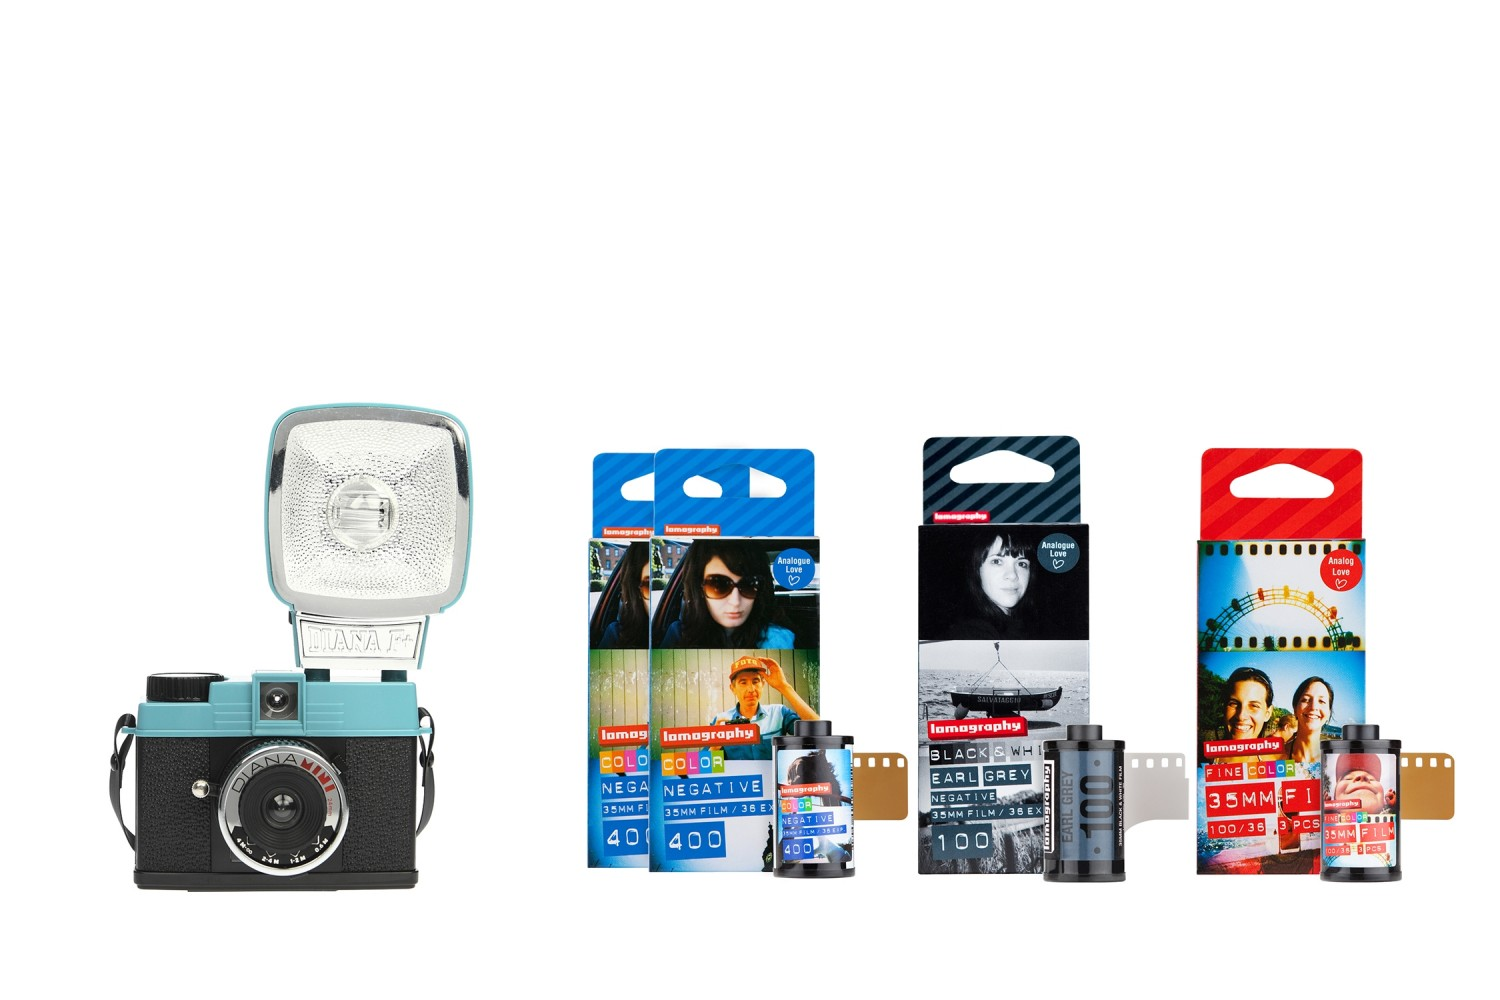 Diana Mini with Flash and Film Bundle